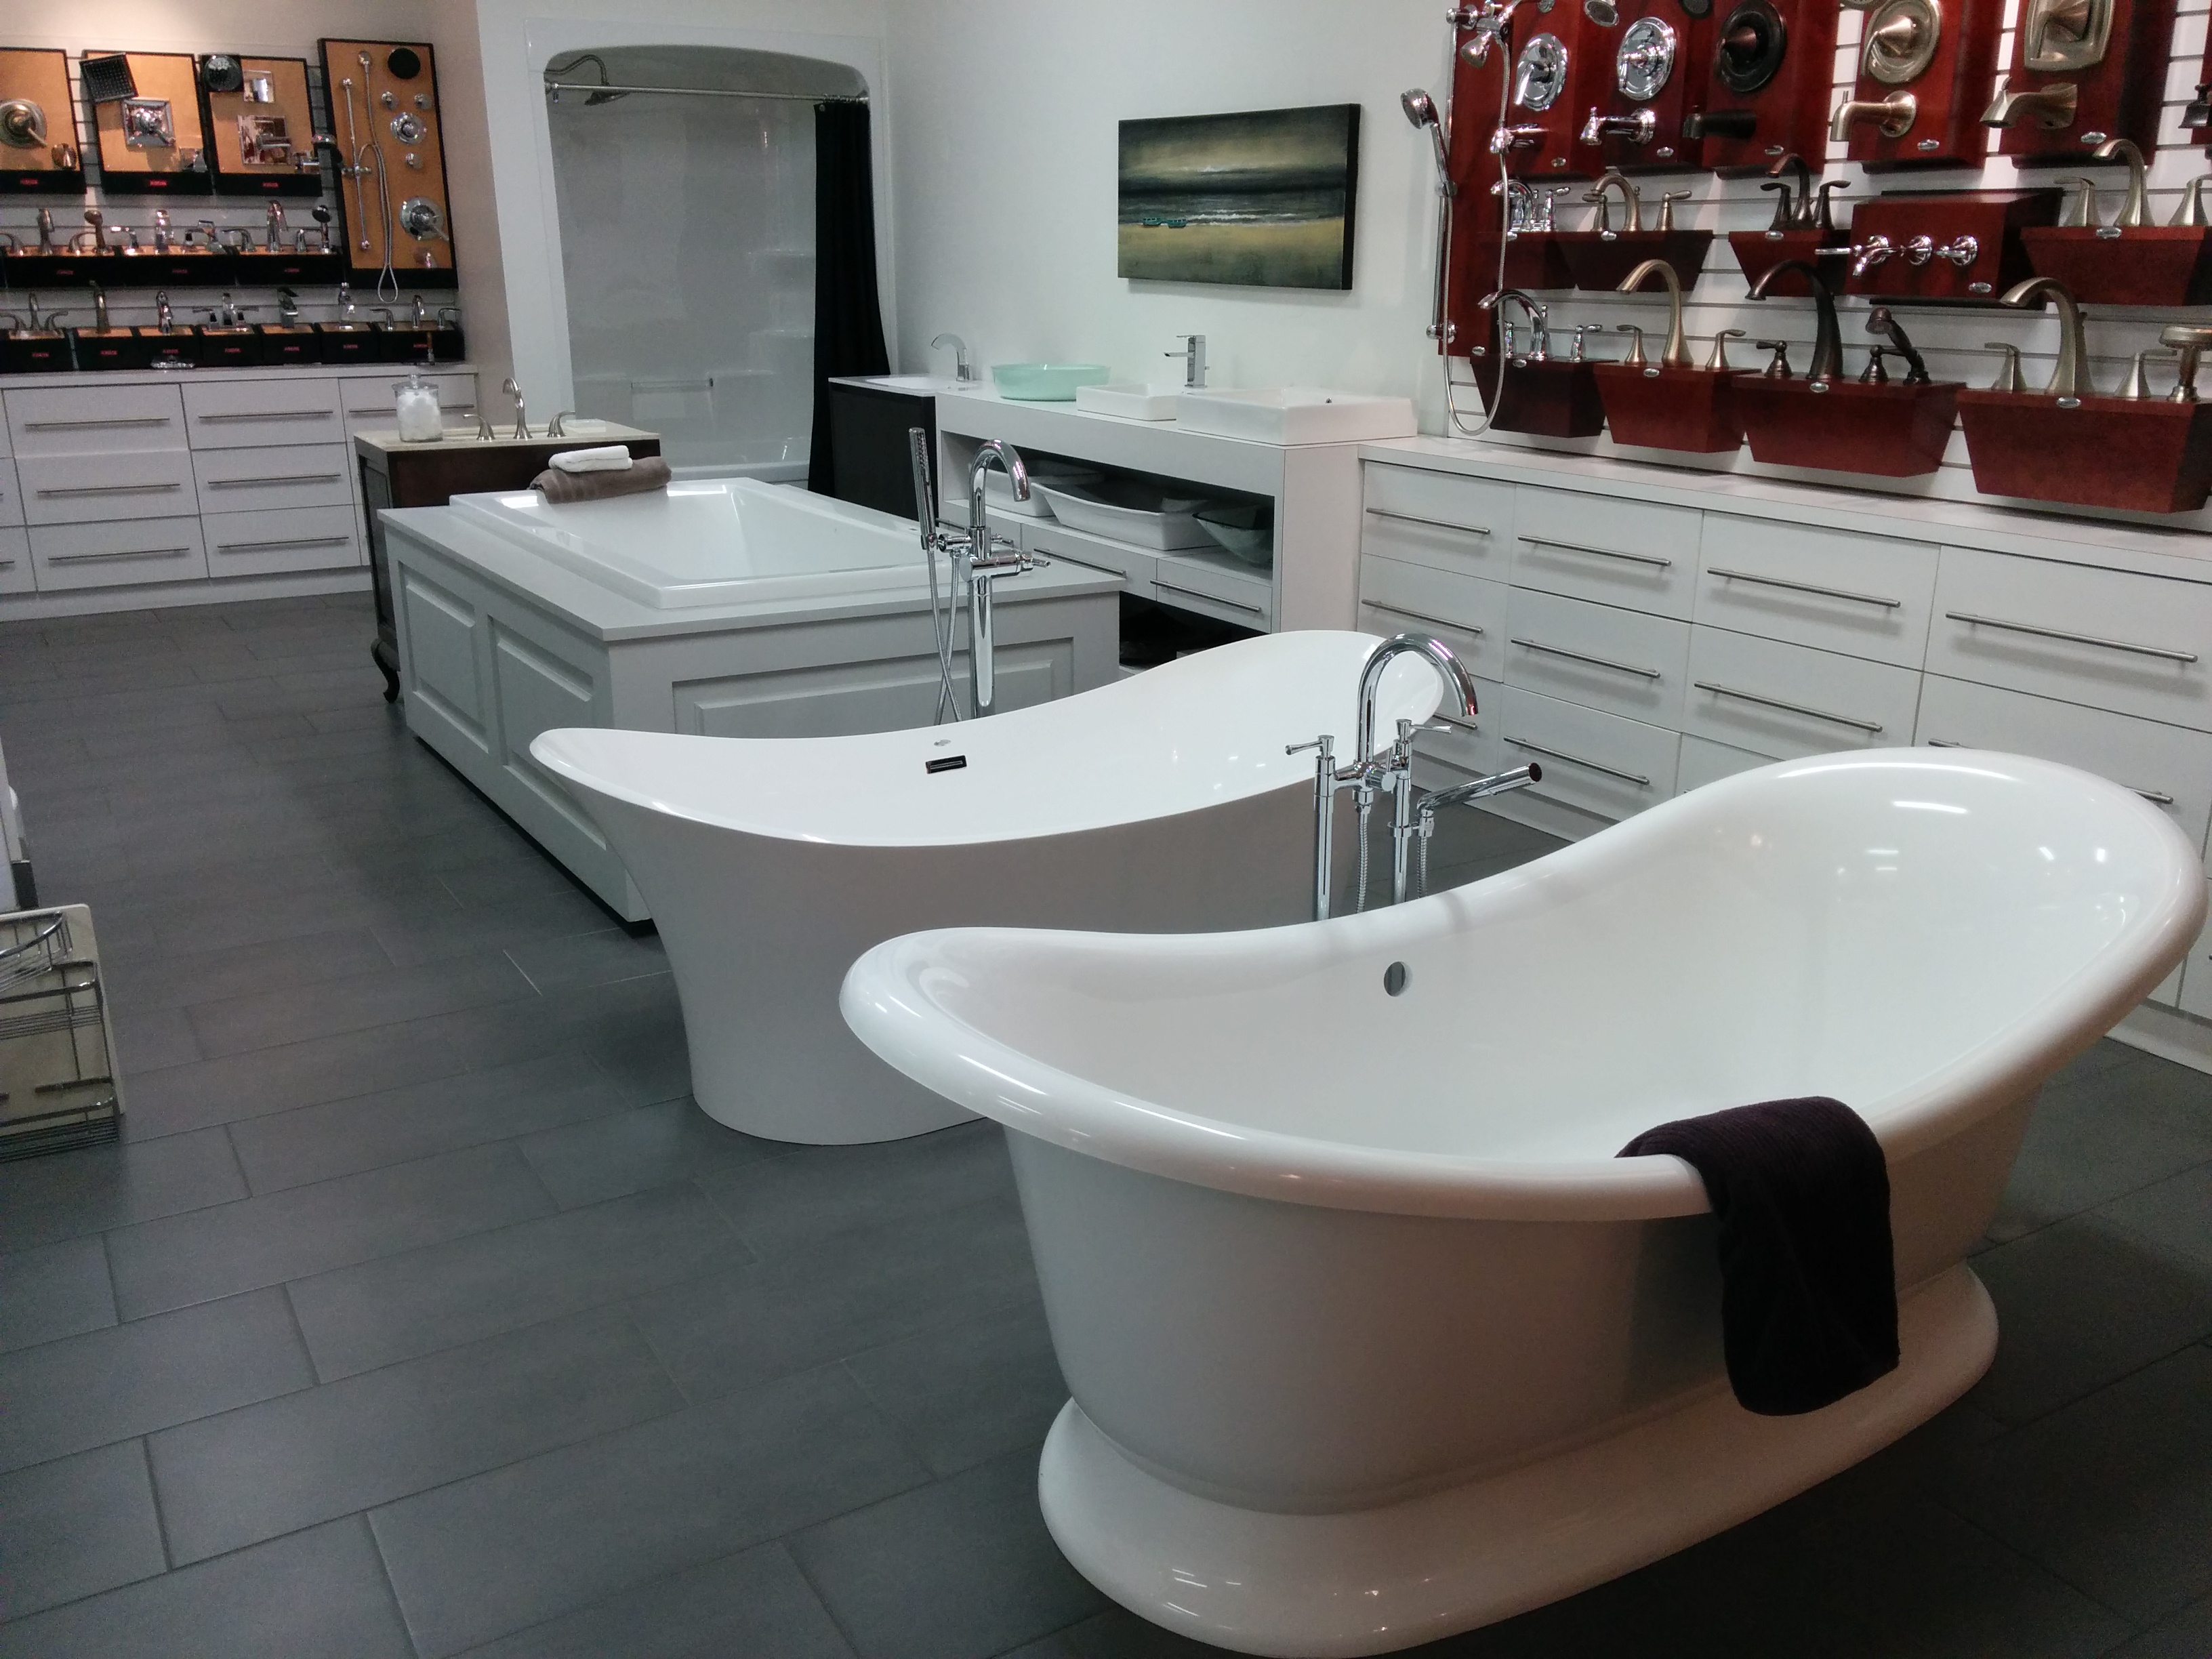 Bathtub in showroom